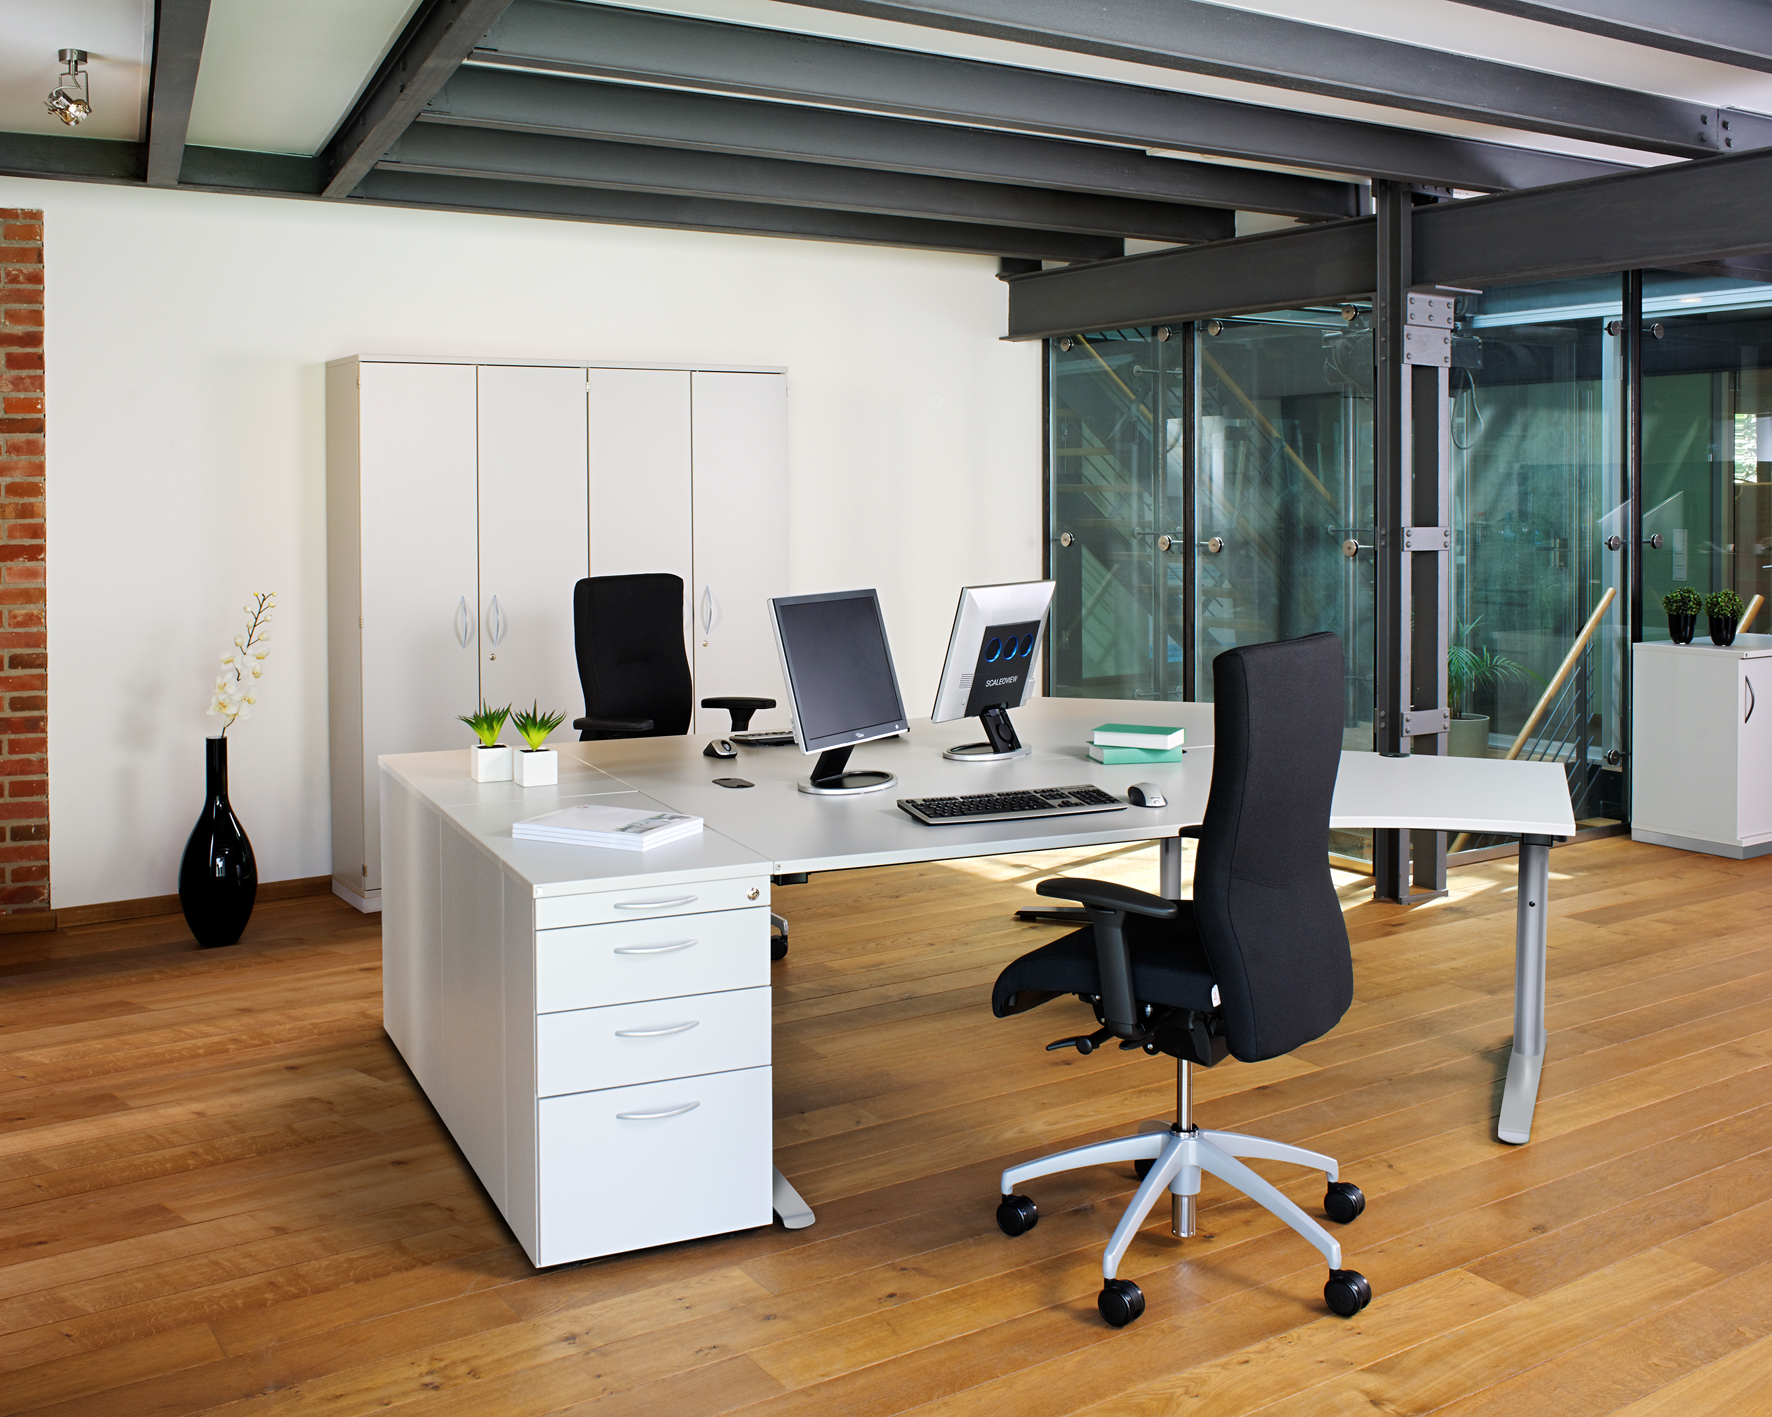 Hom Office Furniture: Kleiderhaus Fitted Furniture, Wardrobes And Sliding Doors